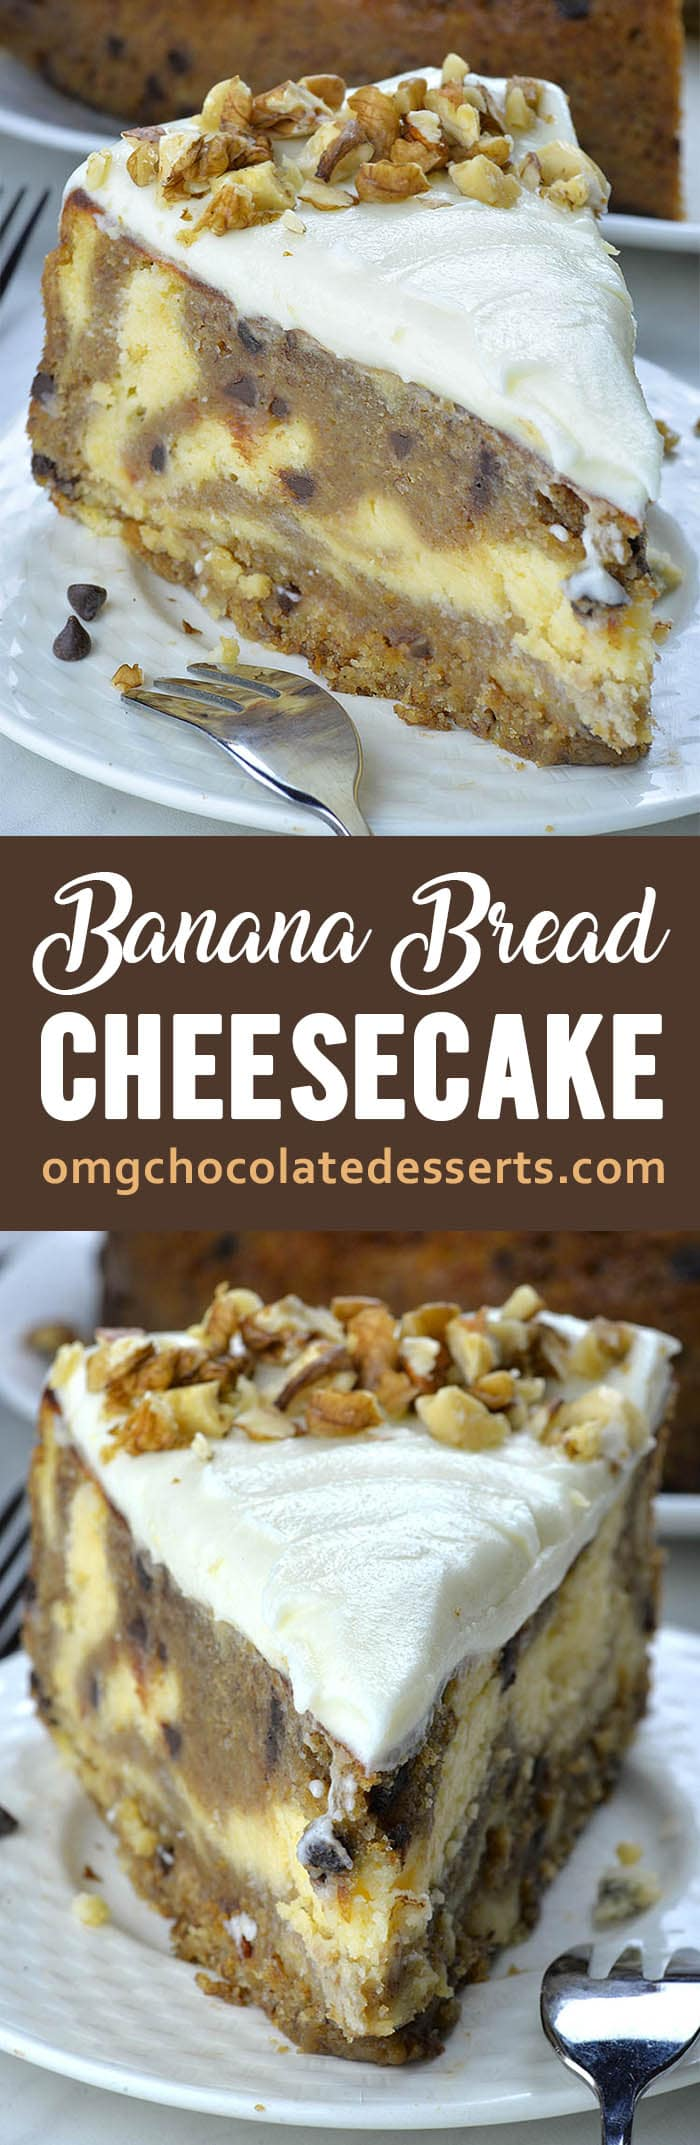 Banana Bread Cheesecake is melt-in-your-mouth, delicious combo of smooth and creamy vanilla cheesecake and the moistest chocolate chip banana bread.